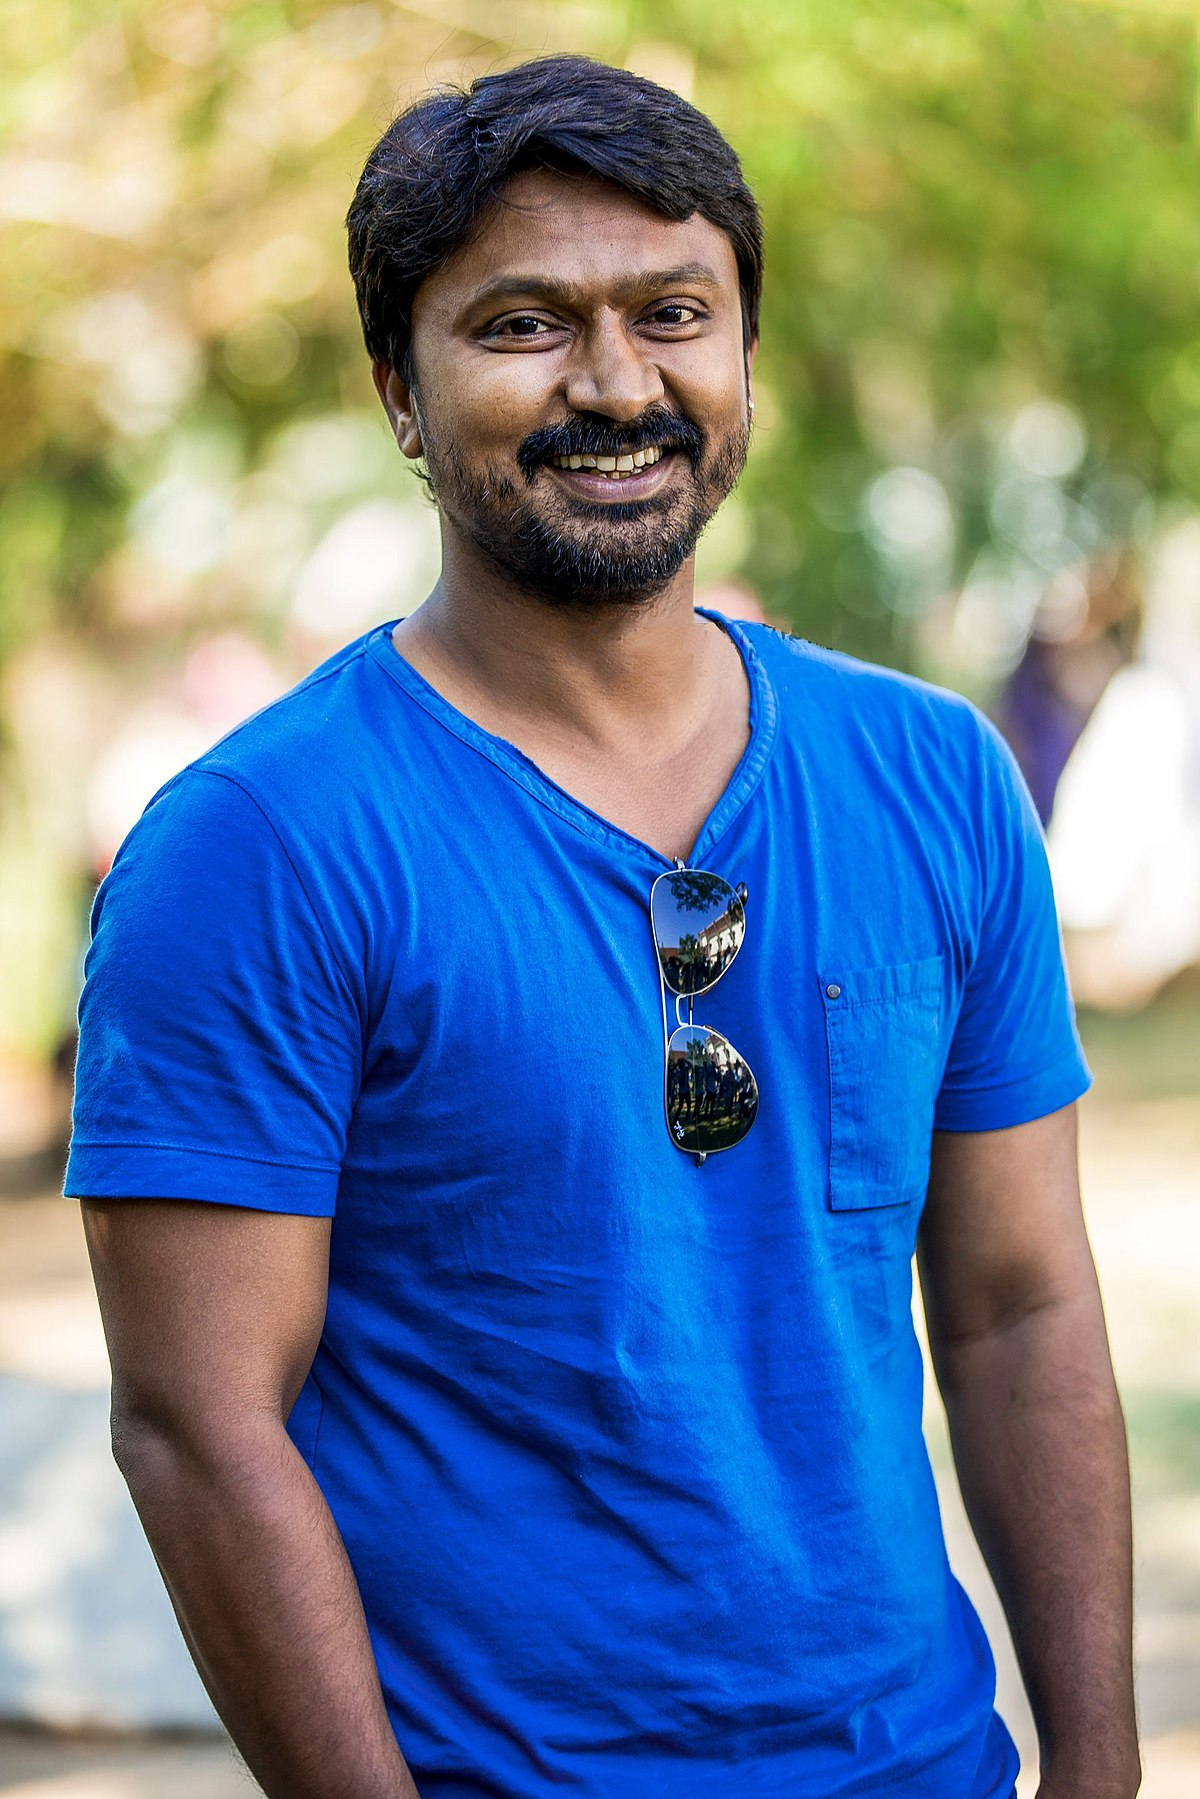 krishna tamil actor wikipedia